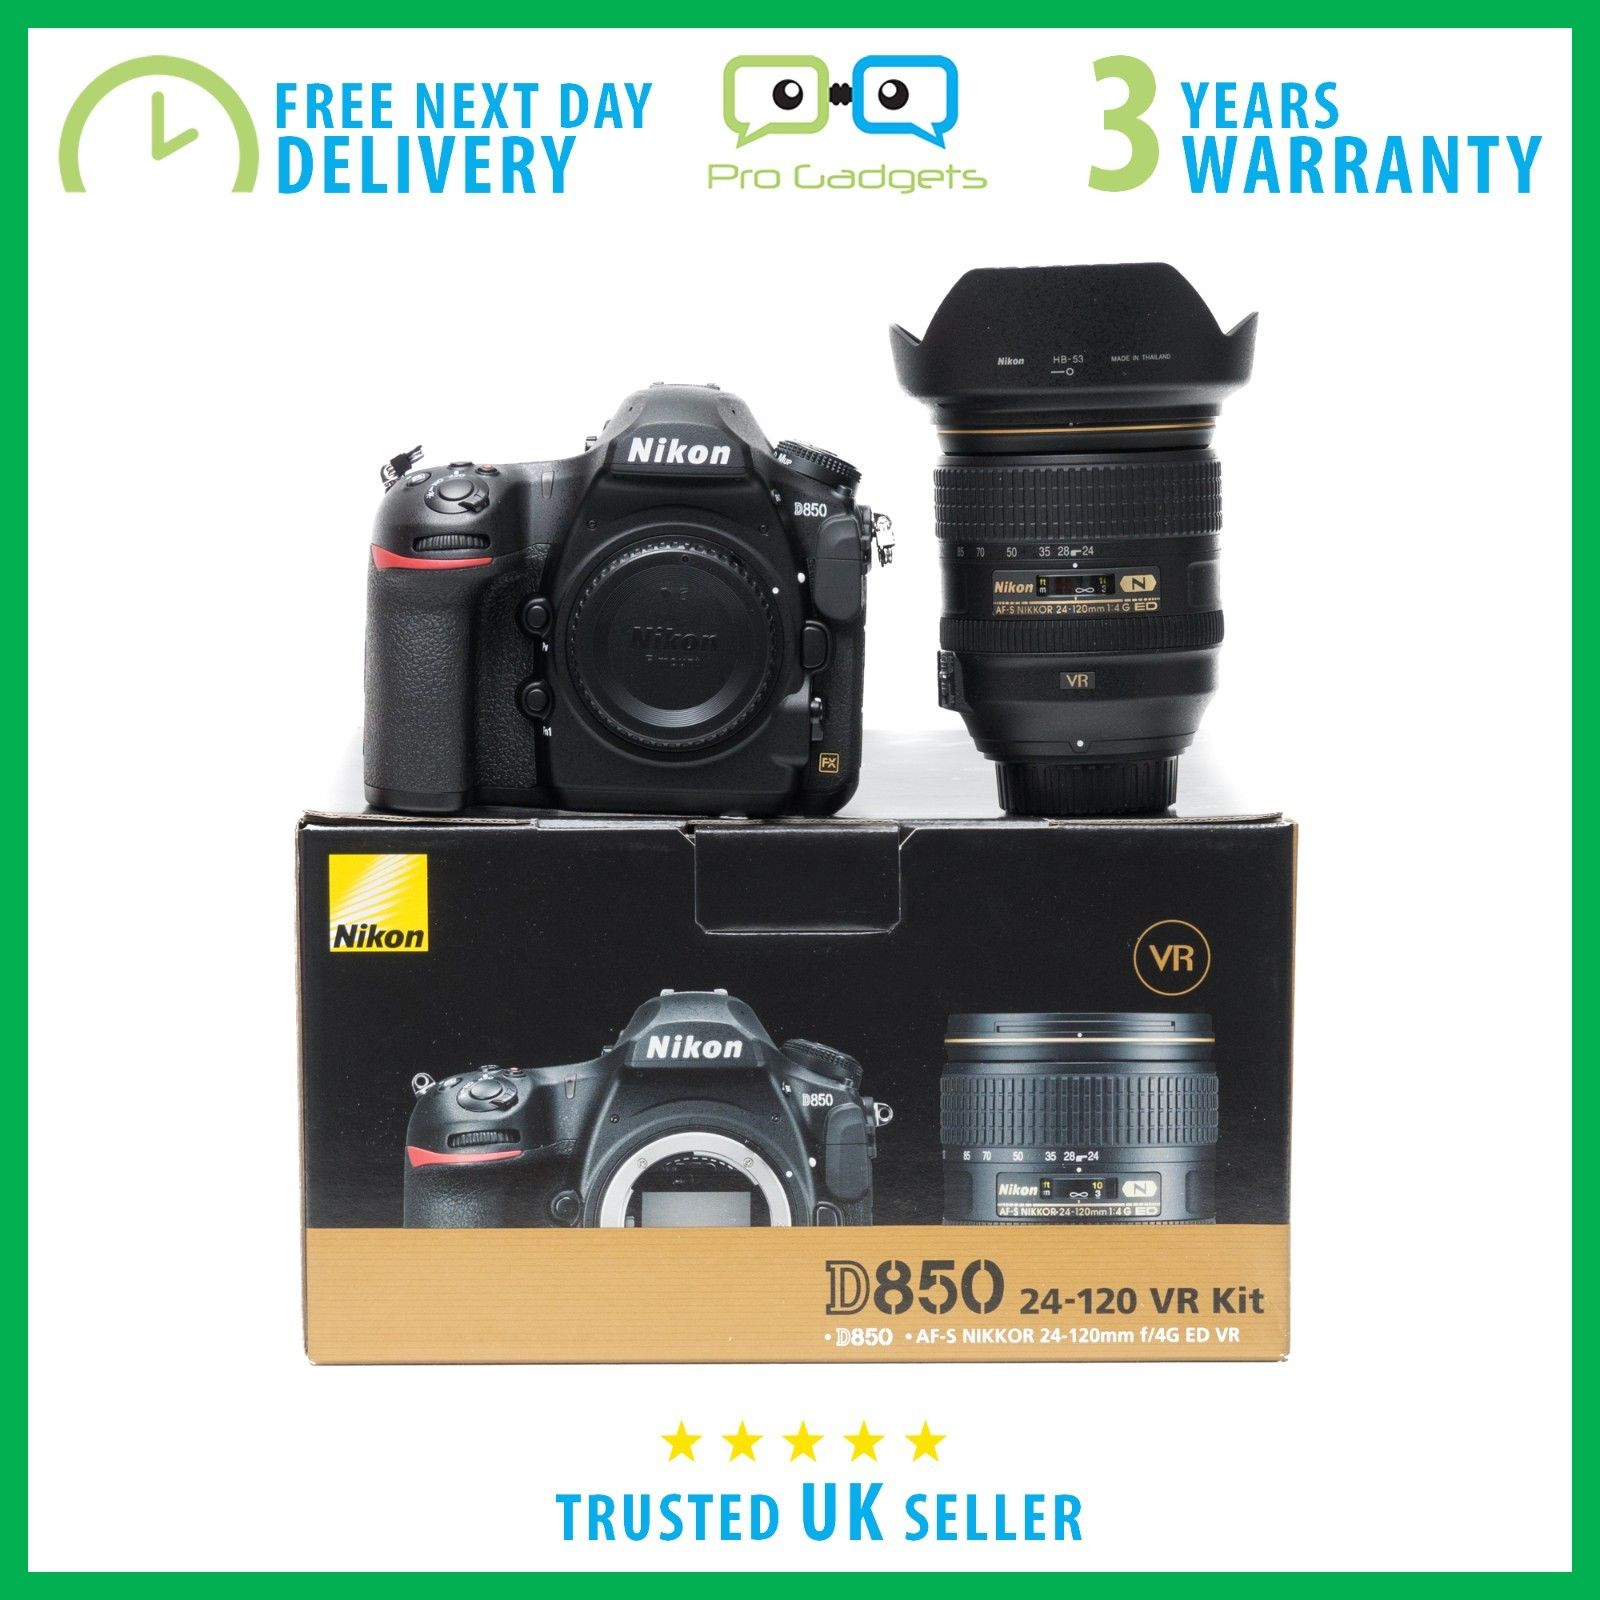 New Nikon D850 With Nikon Nikkor 24-120mm F/4.0 VR Lens - 3 Year Warranty